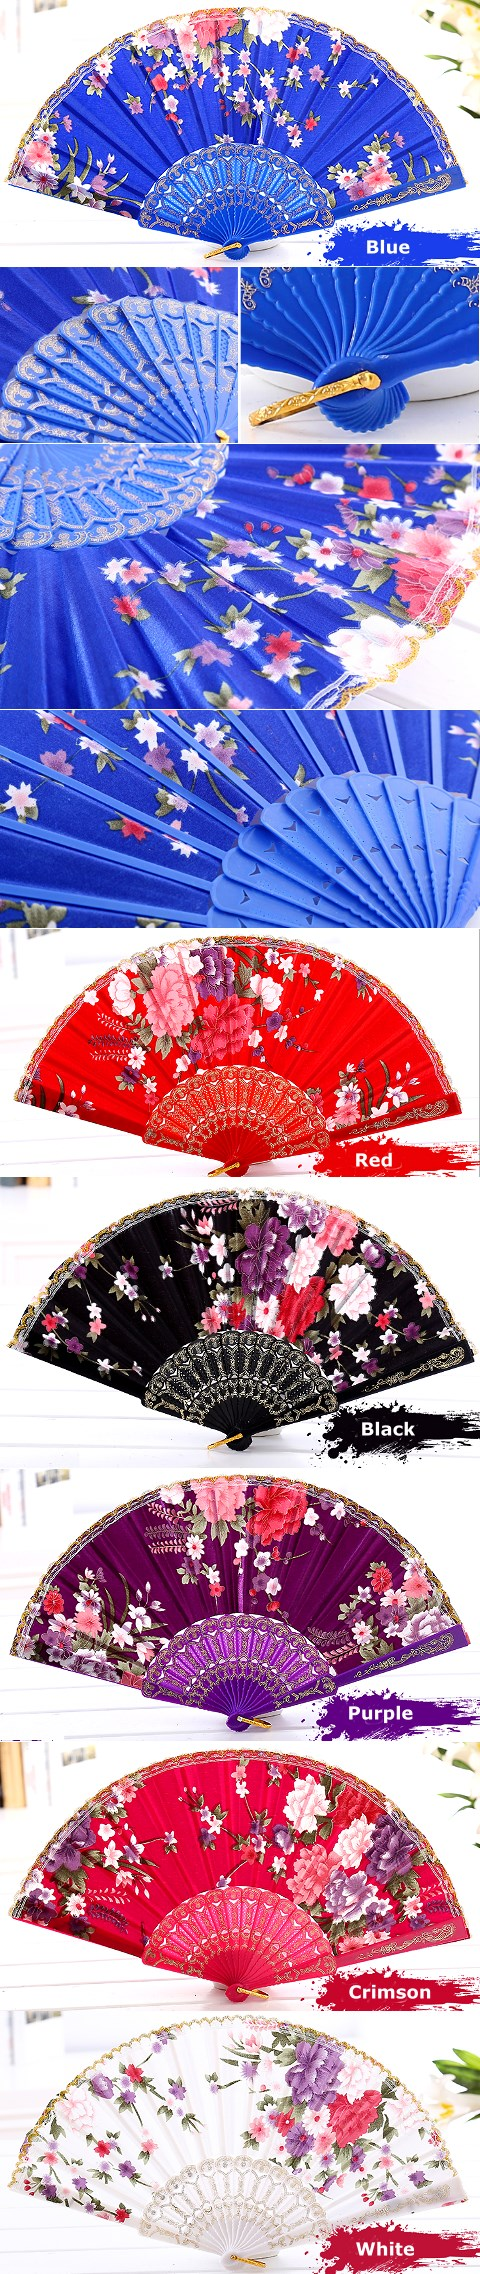 Women's Silk Folding Fan